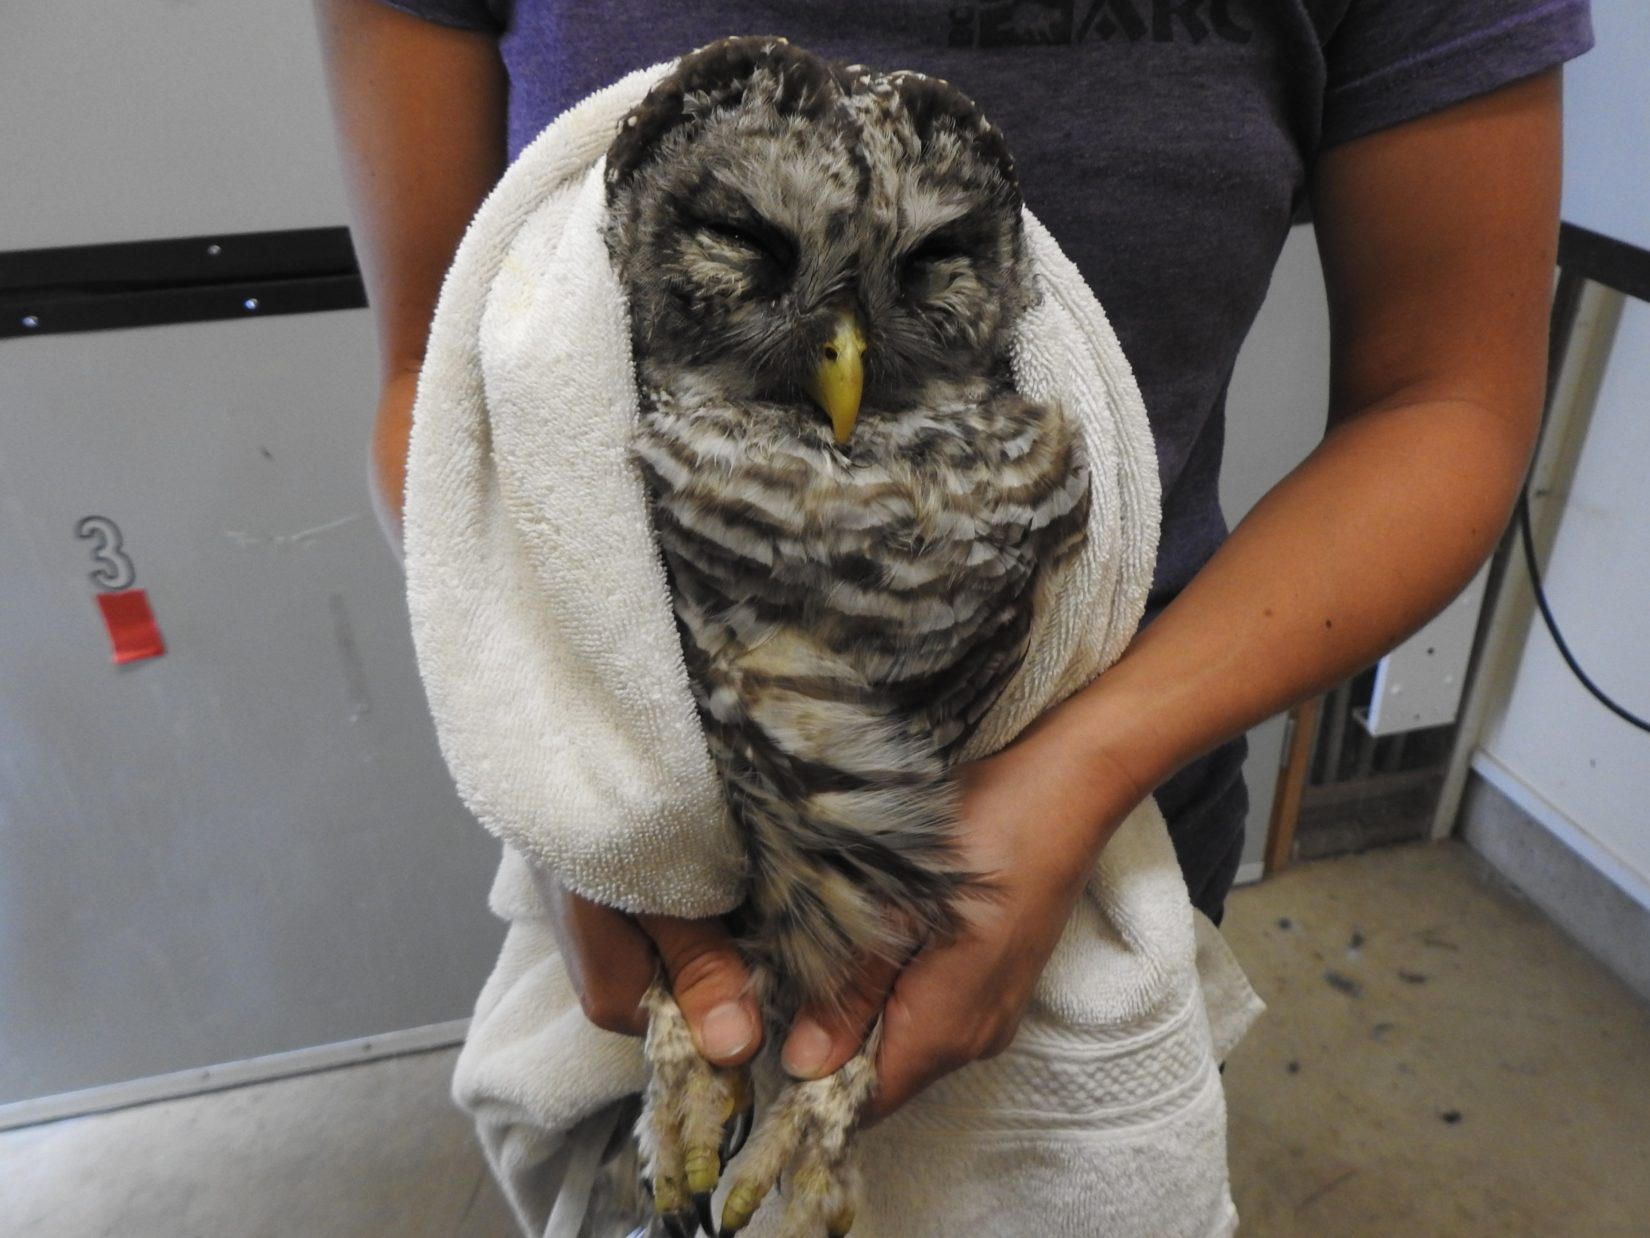 Barred owl in care at Wild ARC